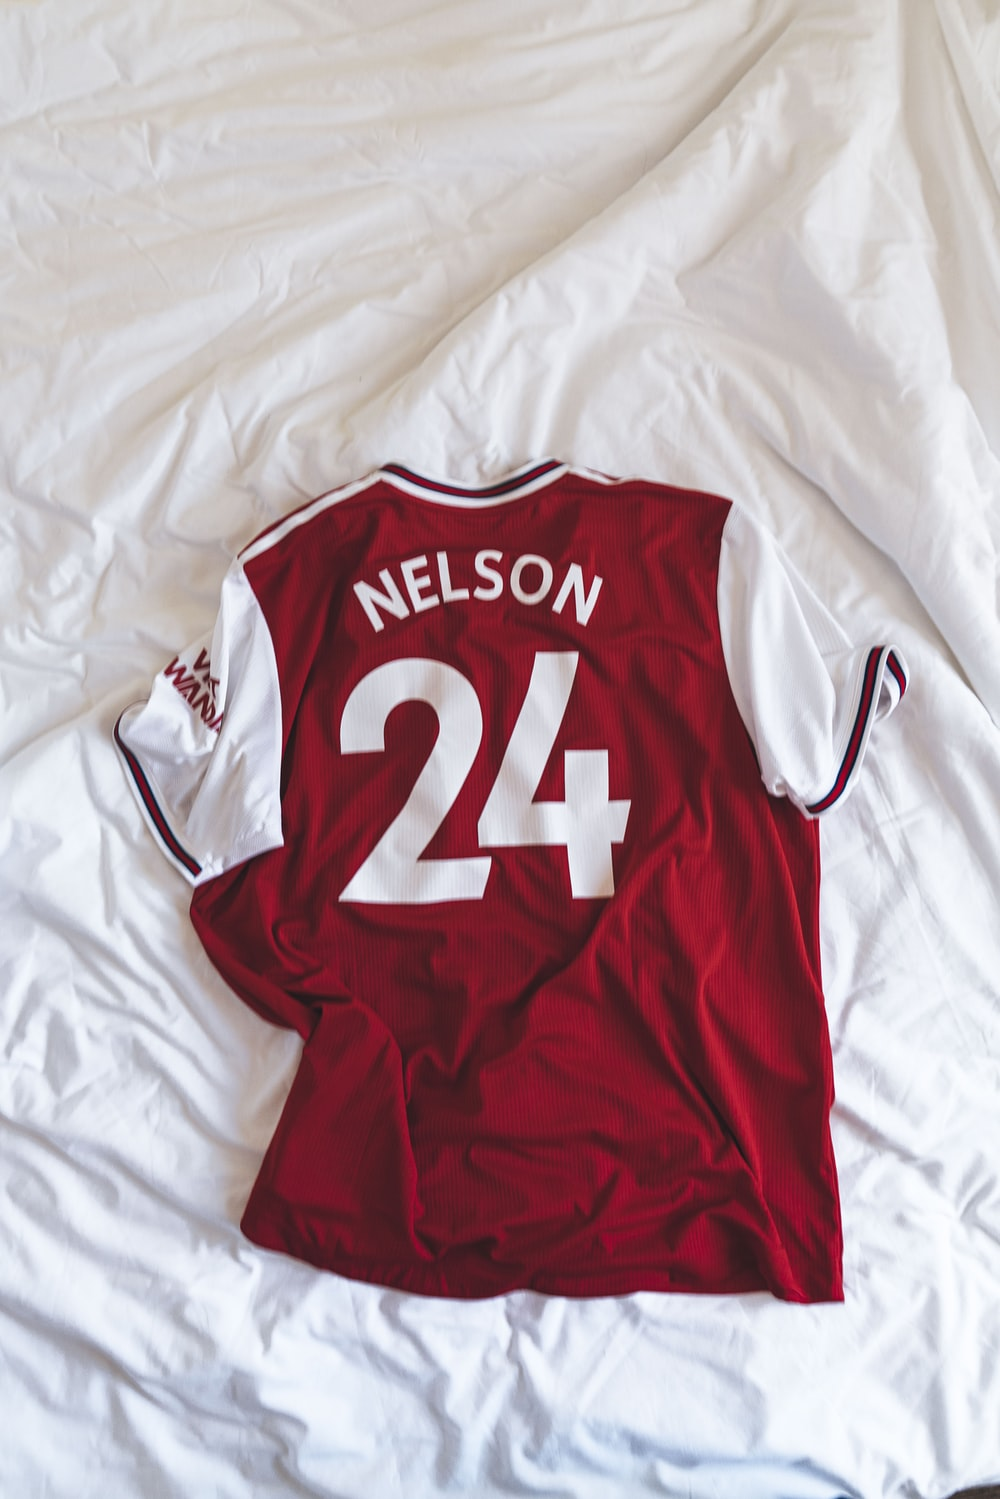 red and white Nelson 24 jersey shirt